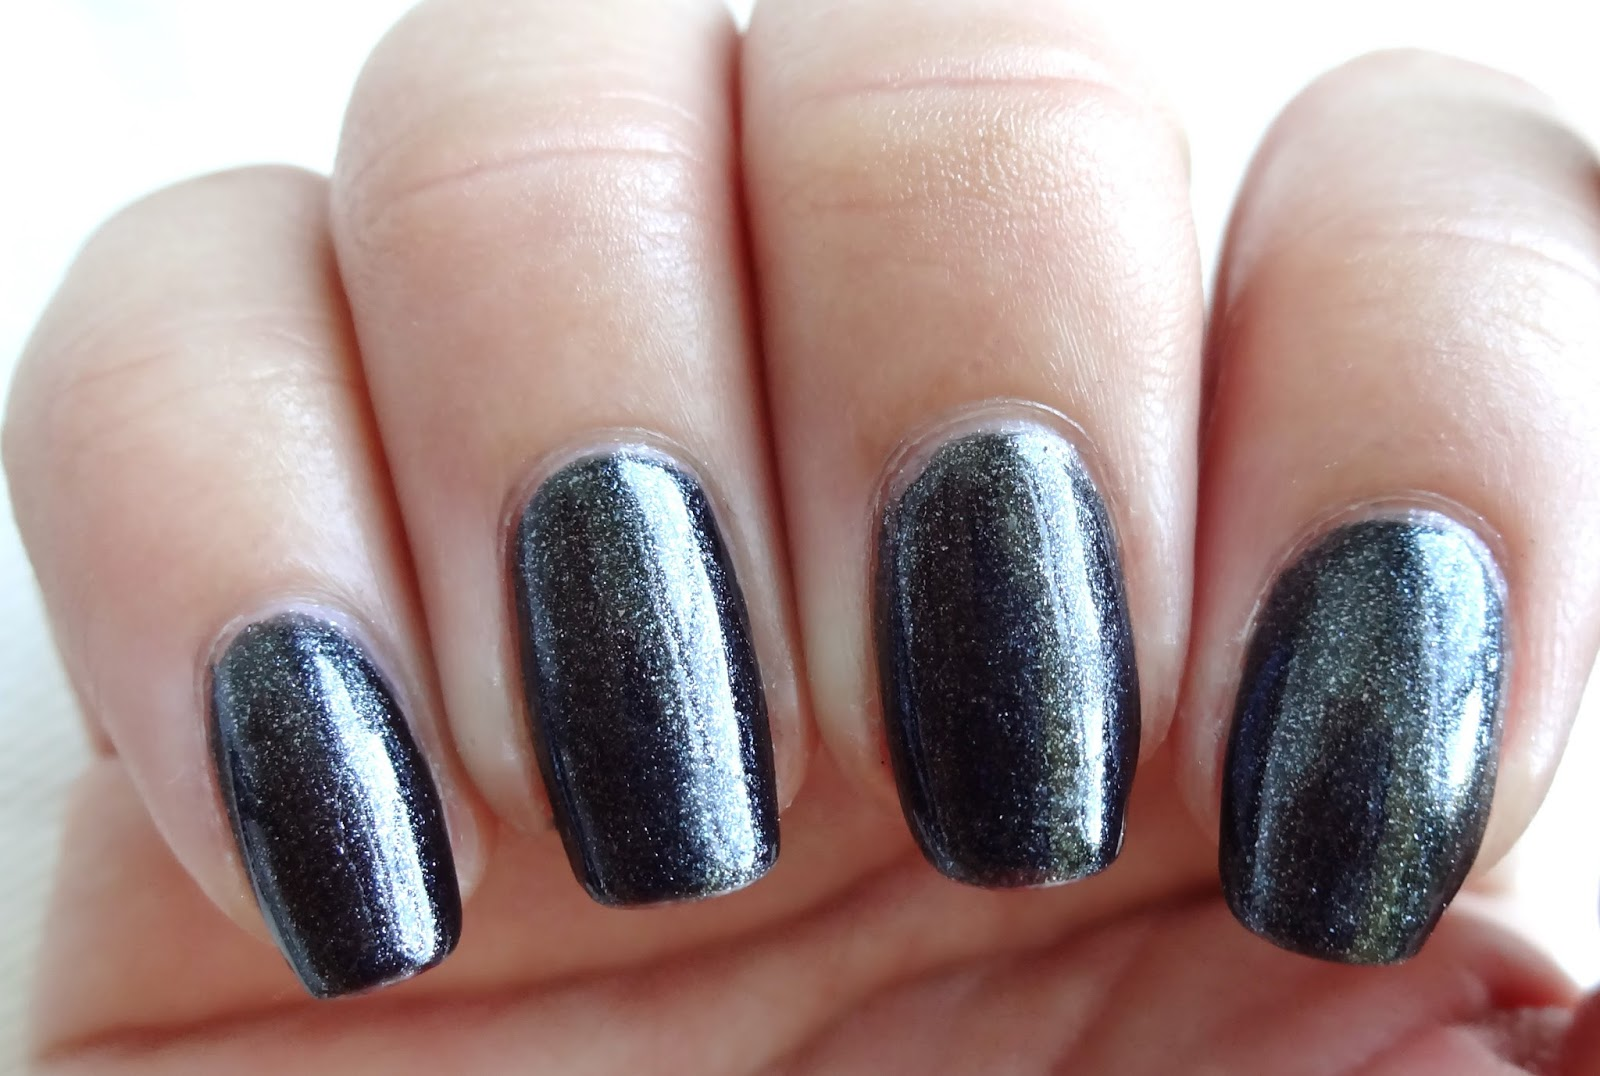 Glittery Black Base Color